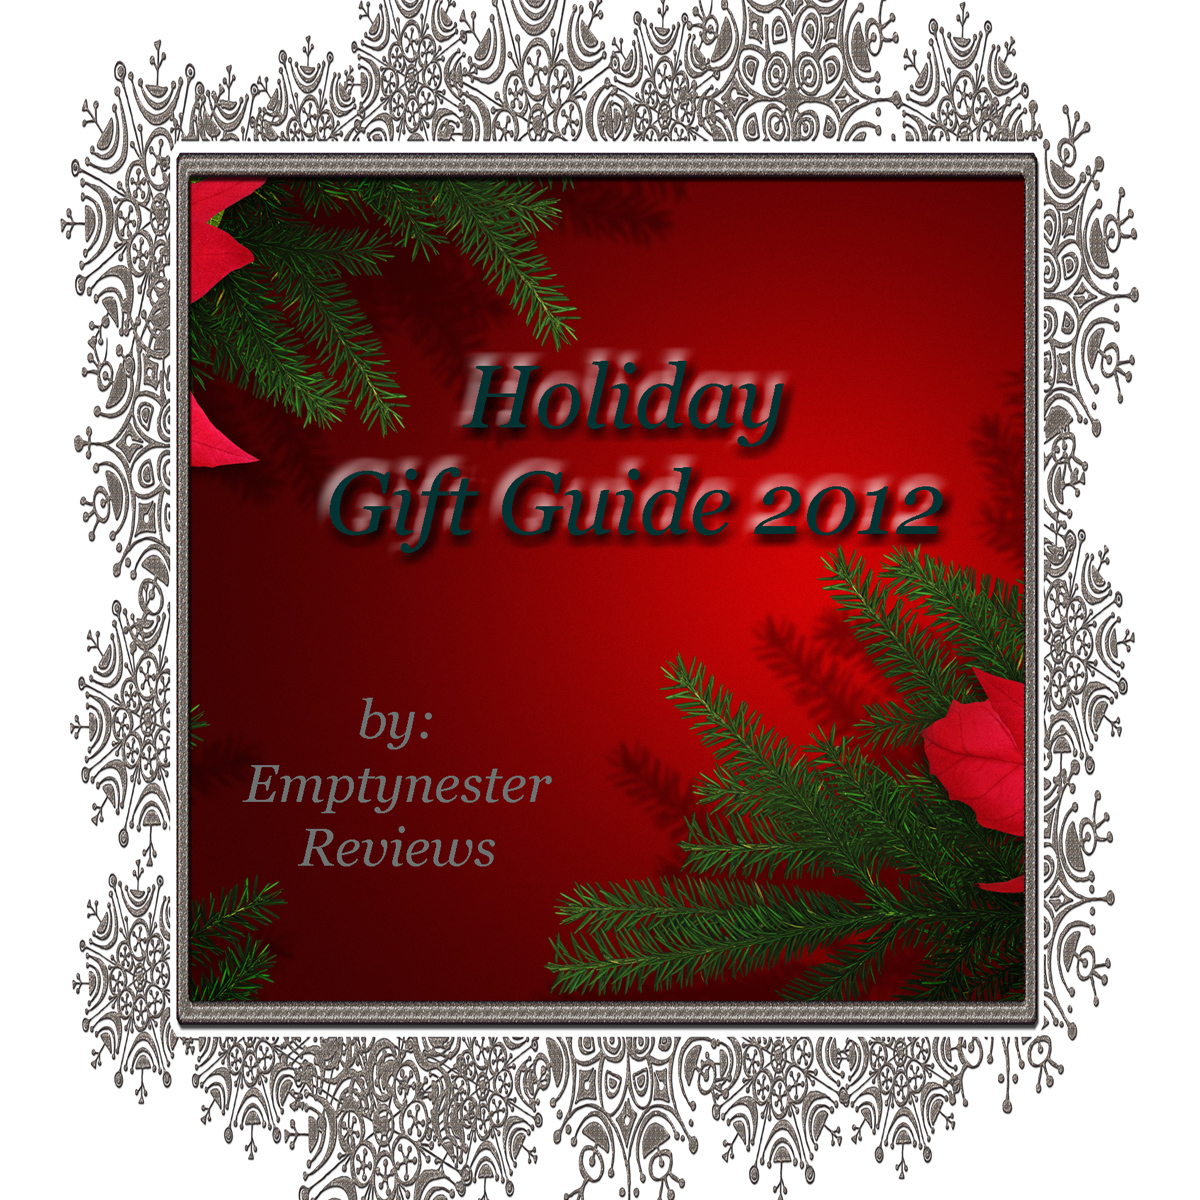 HOLIDAY GIFT GUIDE GIVEAWAYS WEEK 4